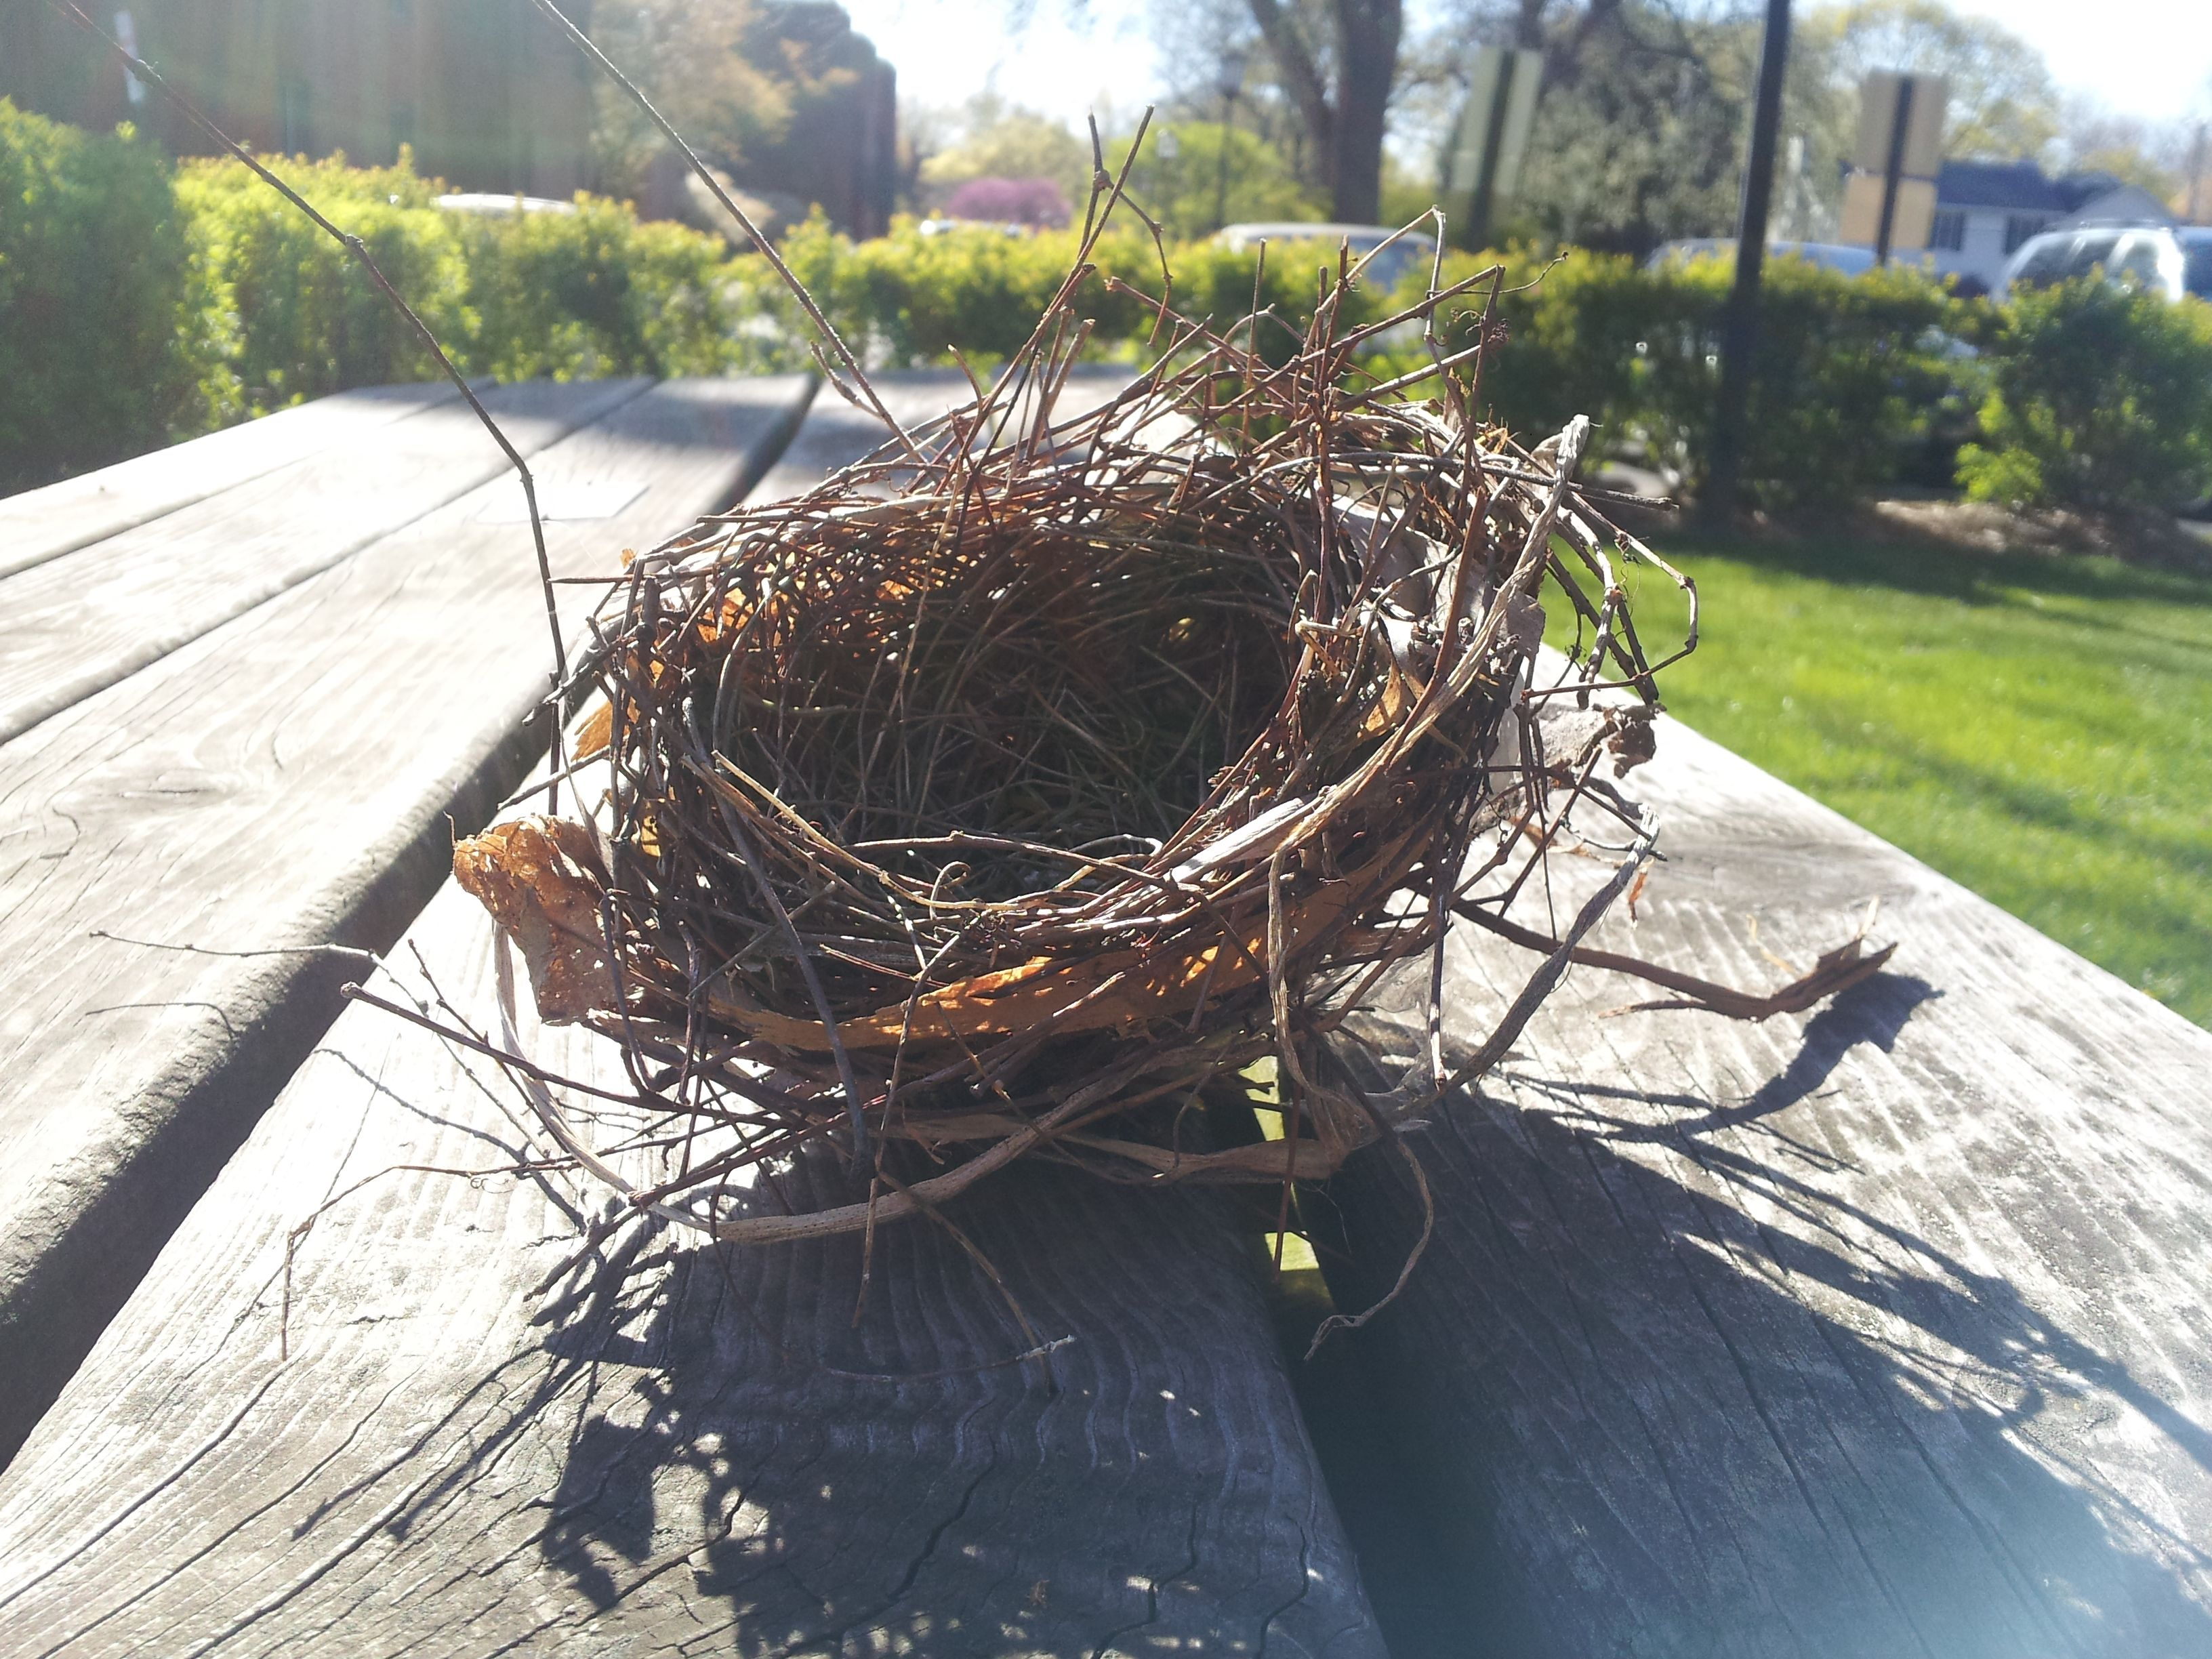 I found a birds nest that fell from a tree! So pretty. No broken eggs, don't worry.